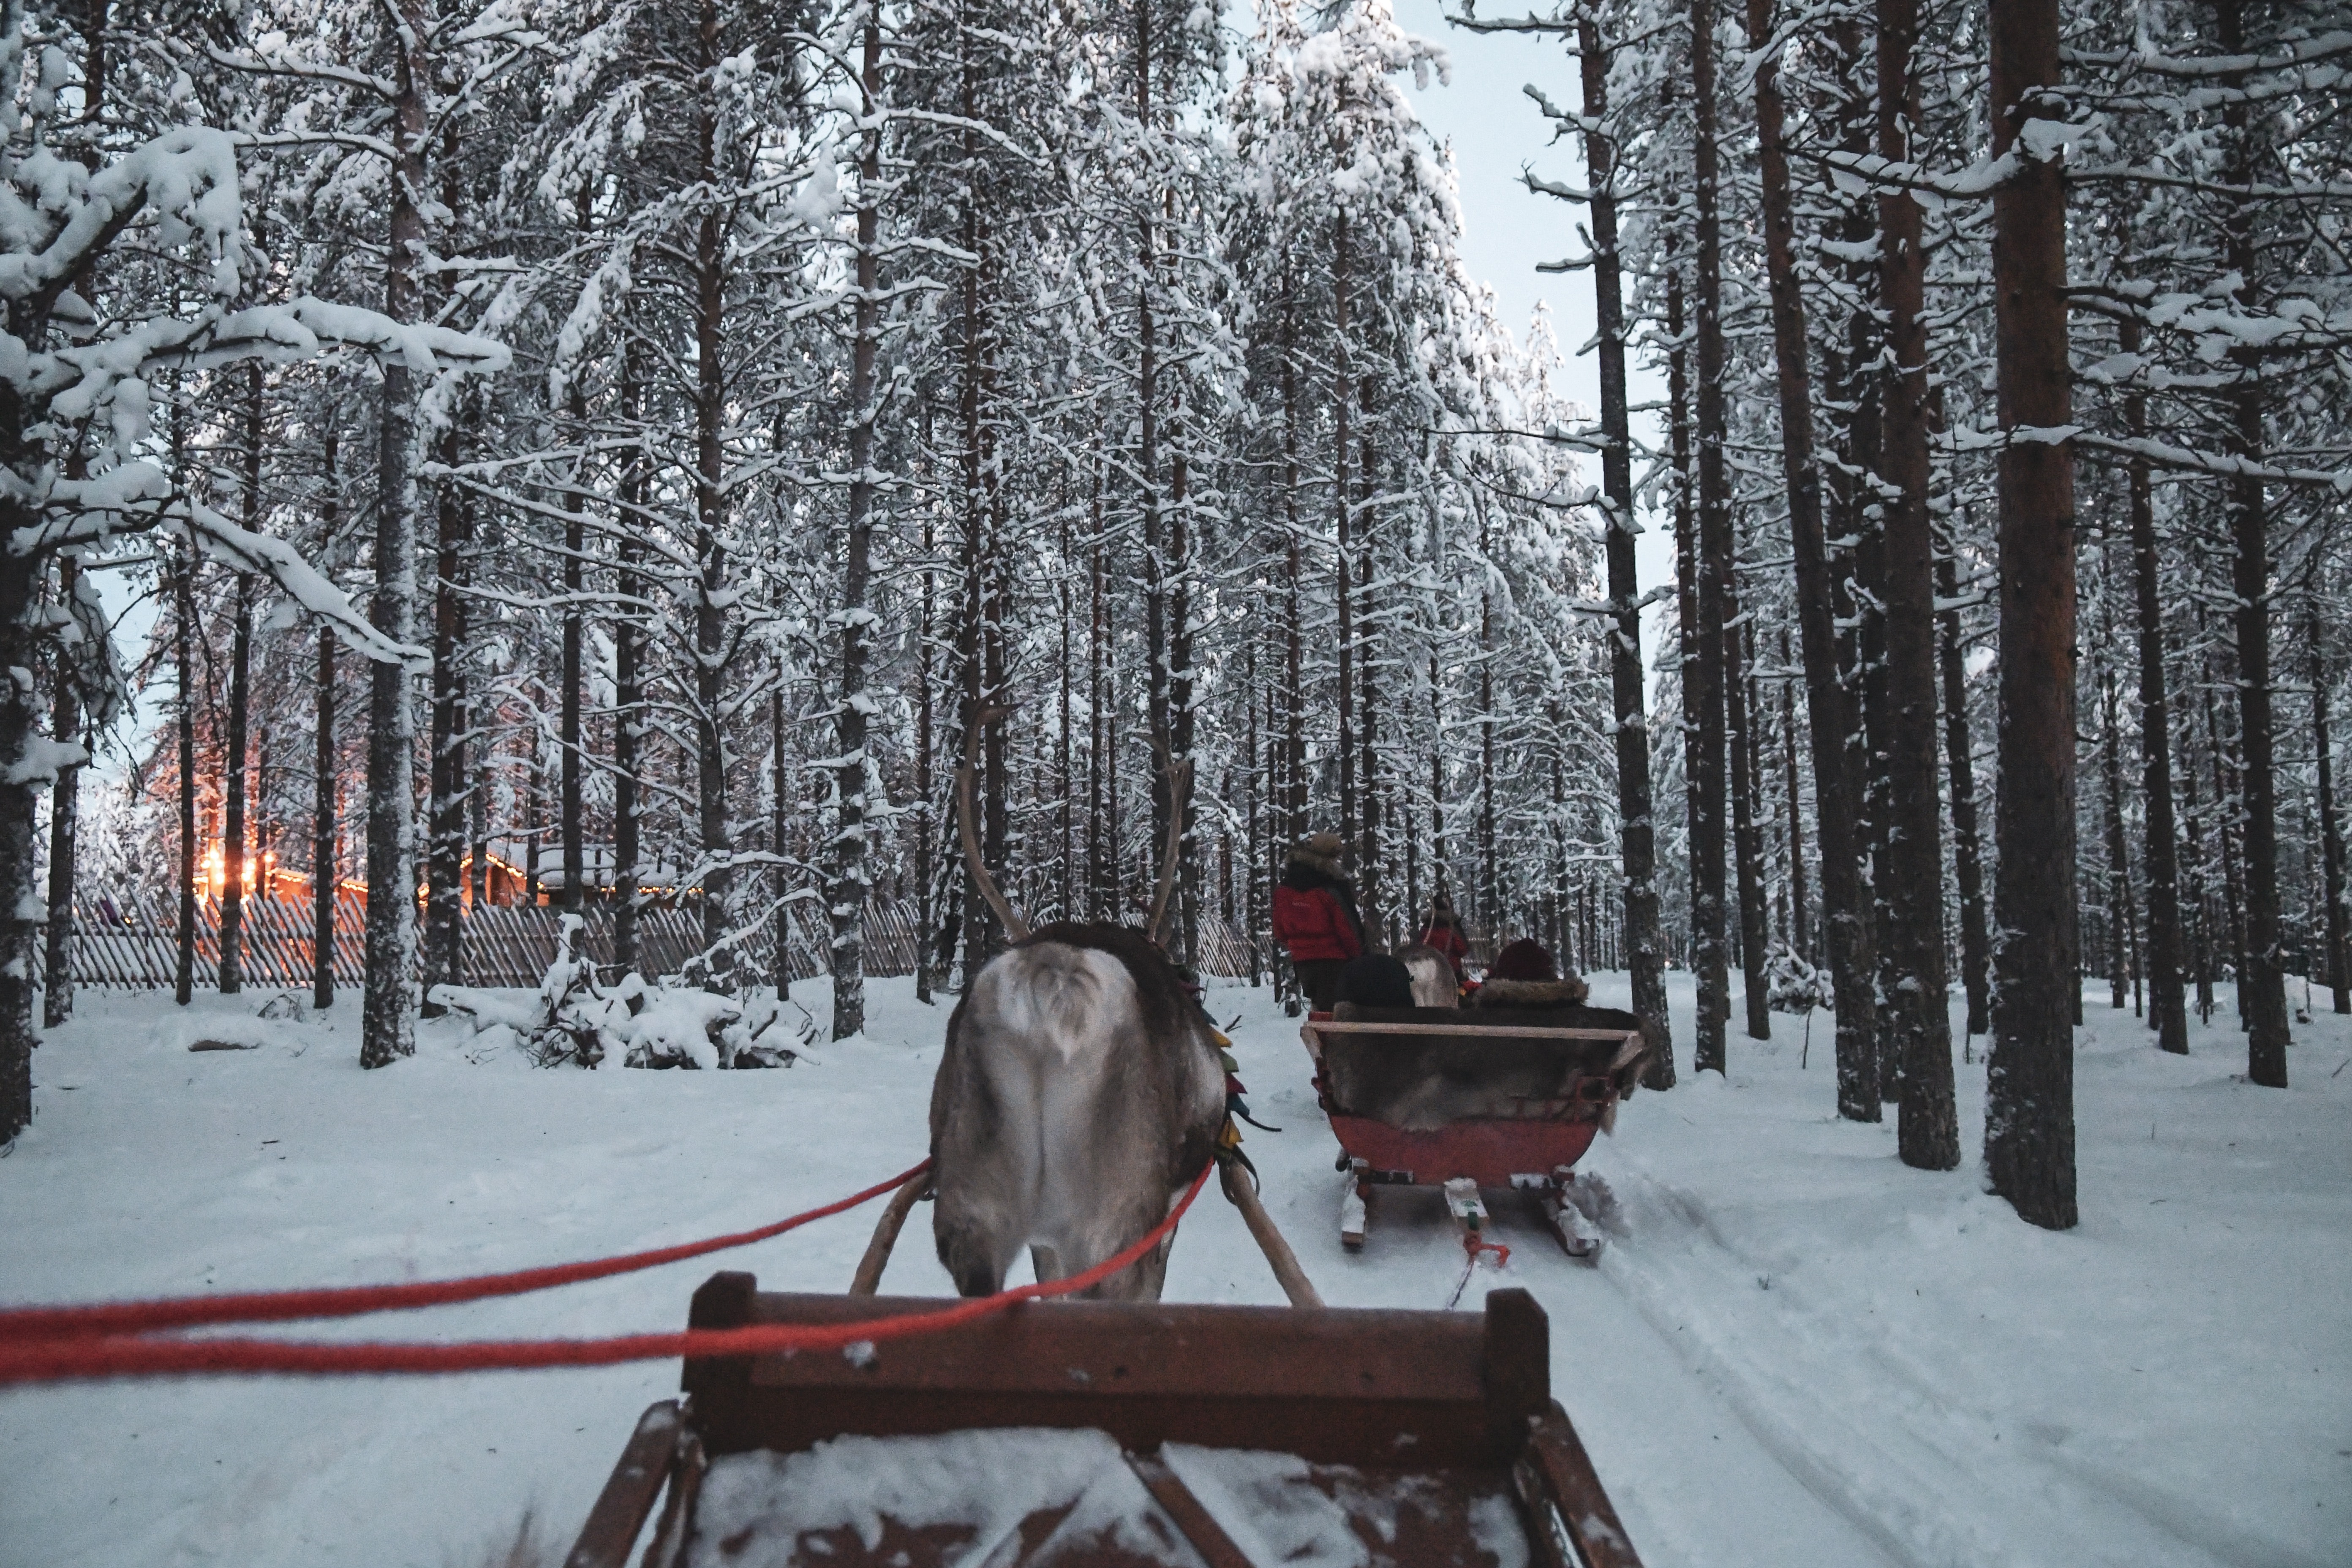 two sleighs on snowy road